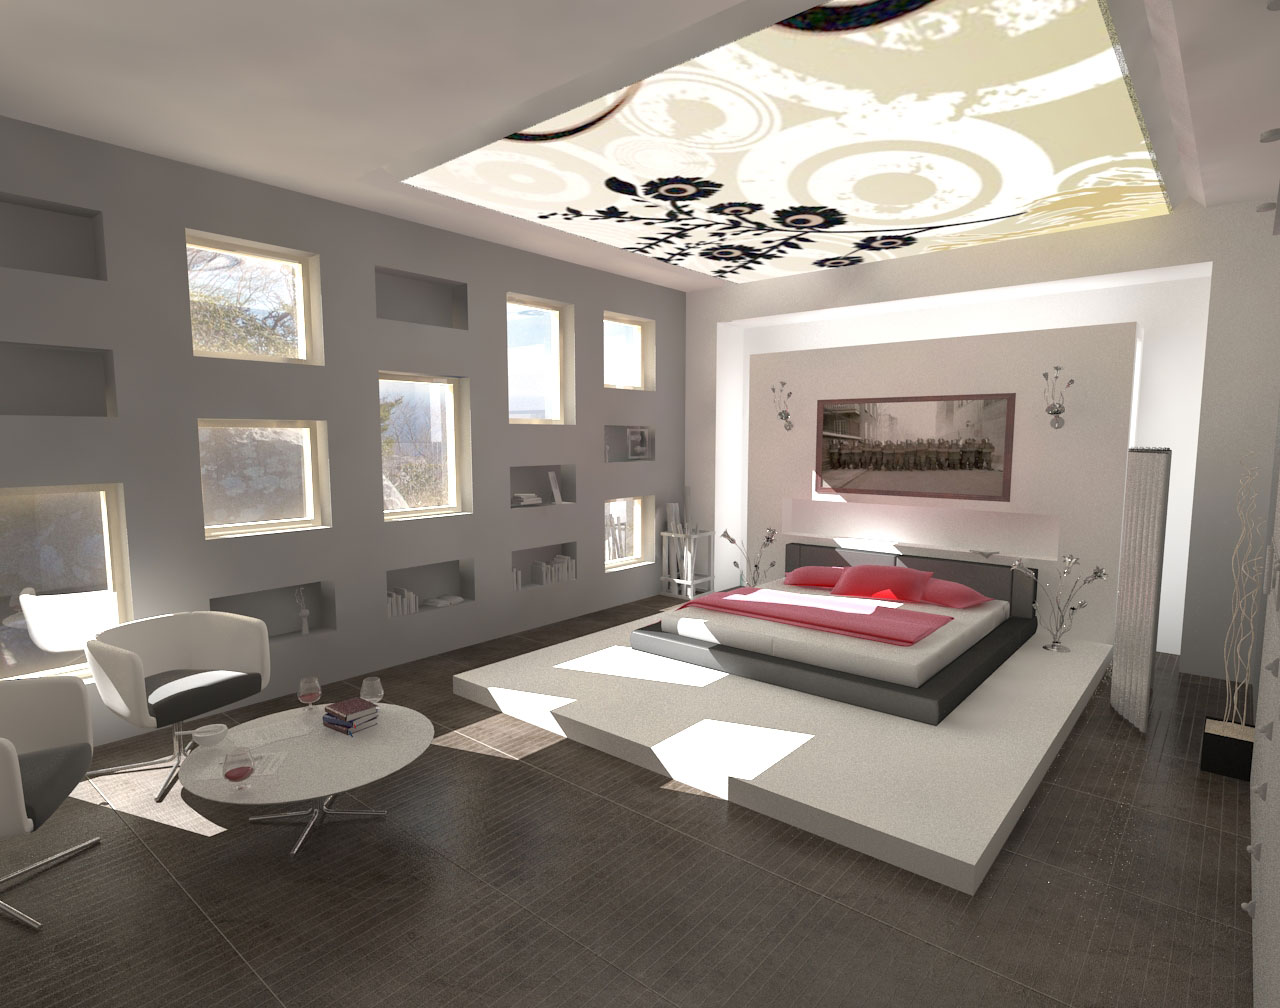 Excellent Modern Home Interior Design Bedrooms 1280 x 1008 · 183 kB · jpeg